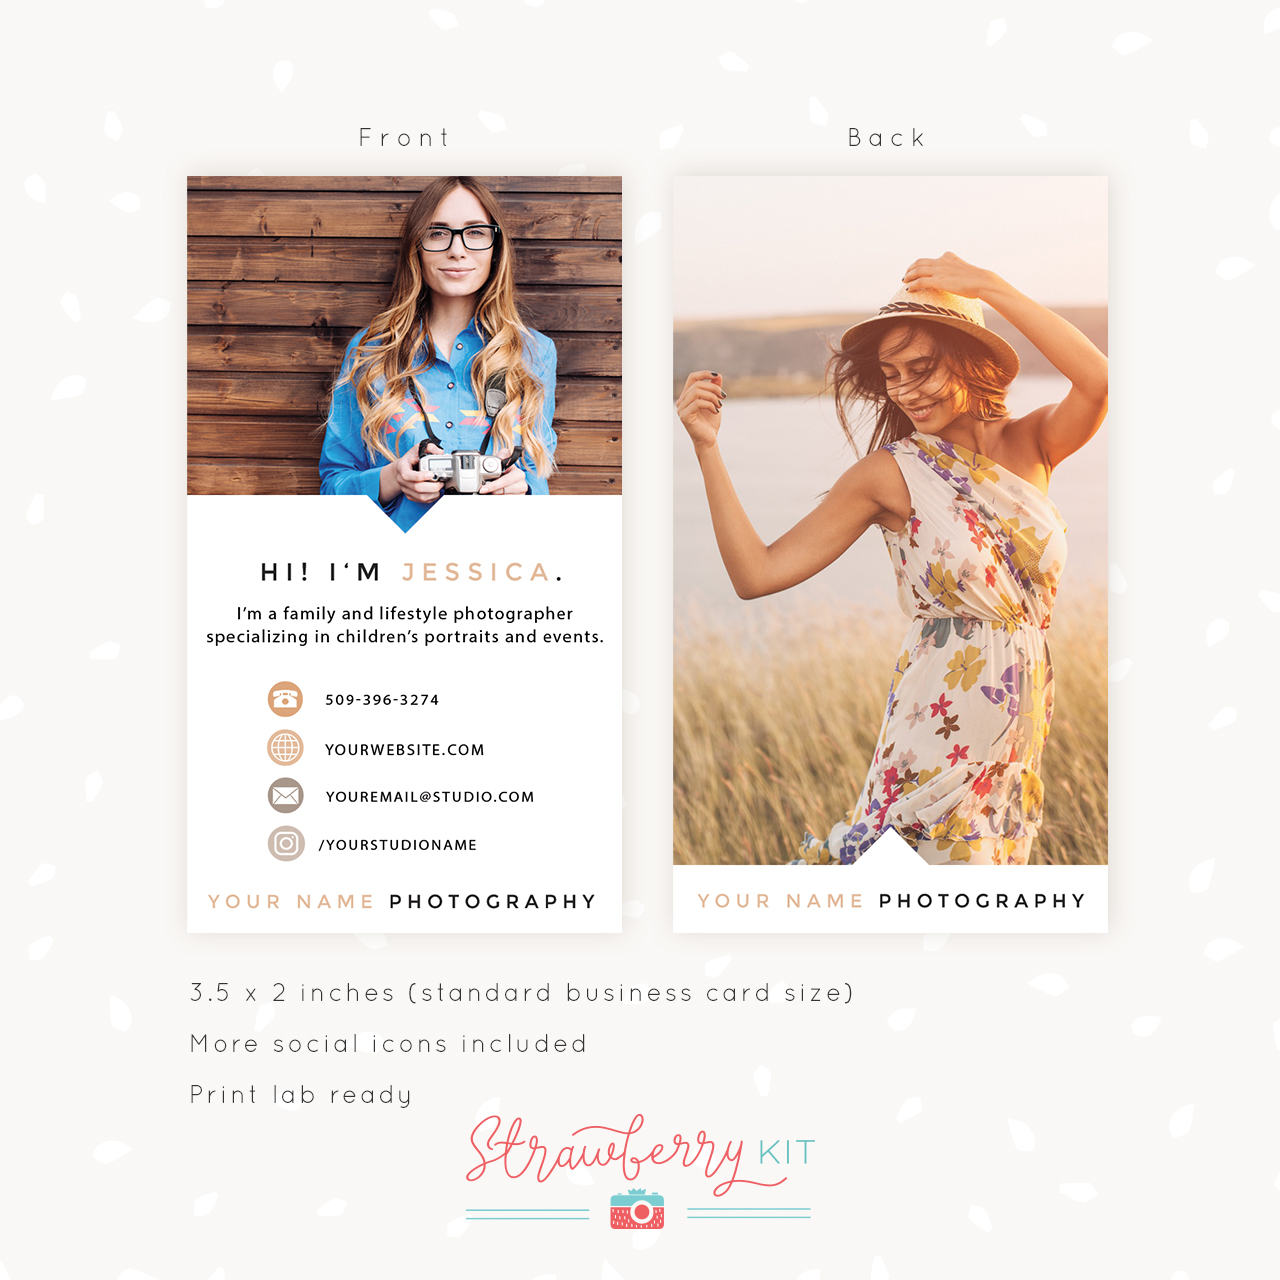 Vertical Business Card Template for Photographers - Strawberry Kit